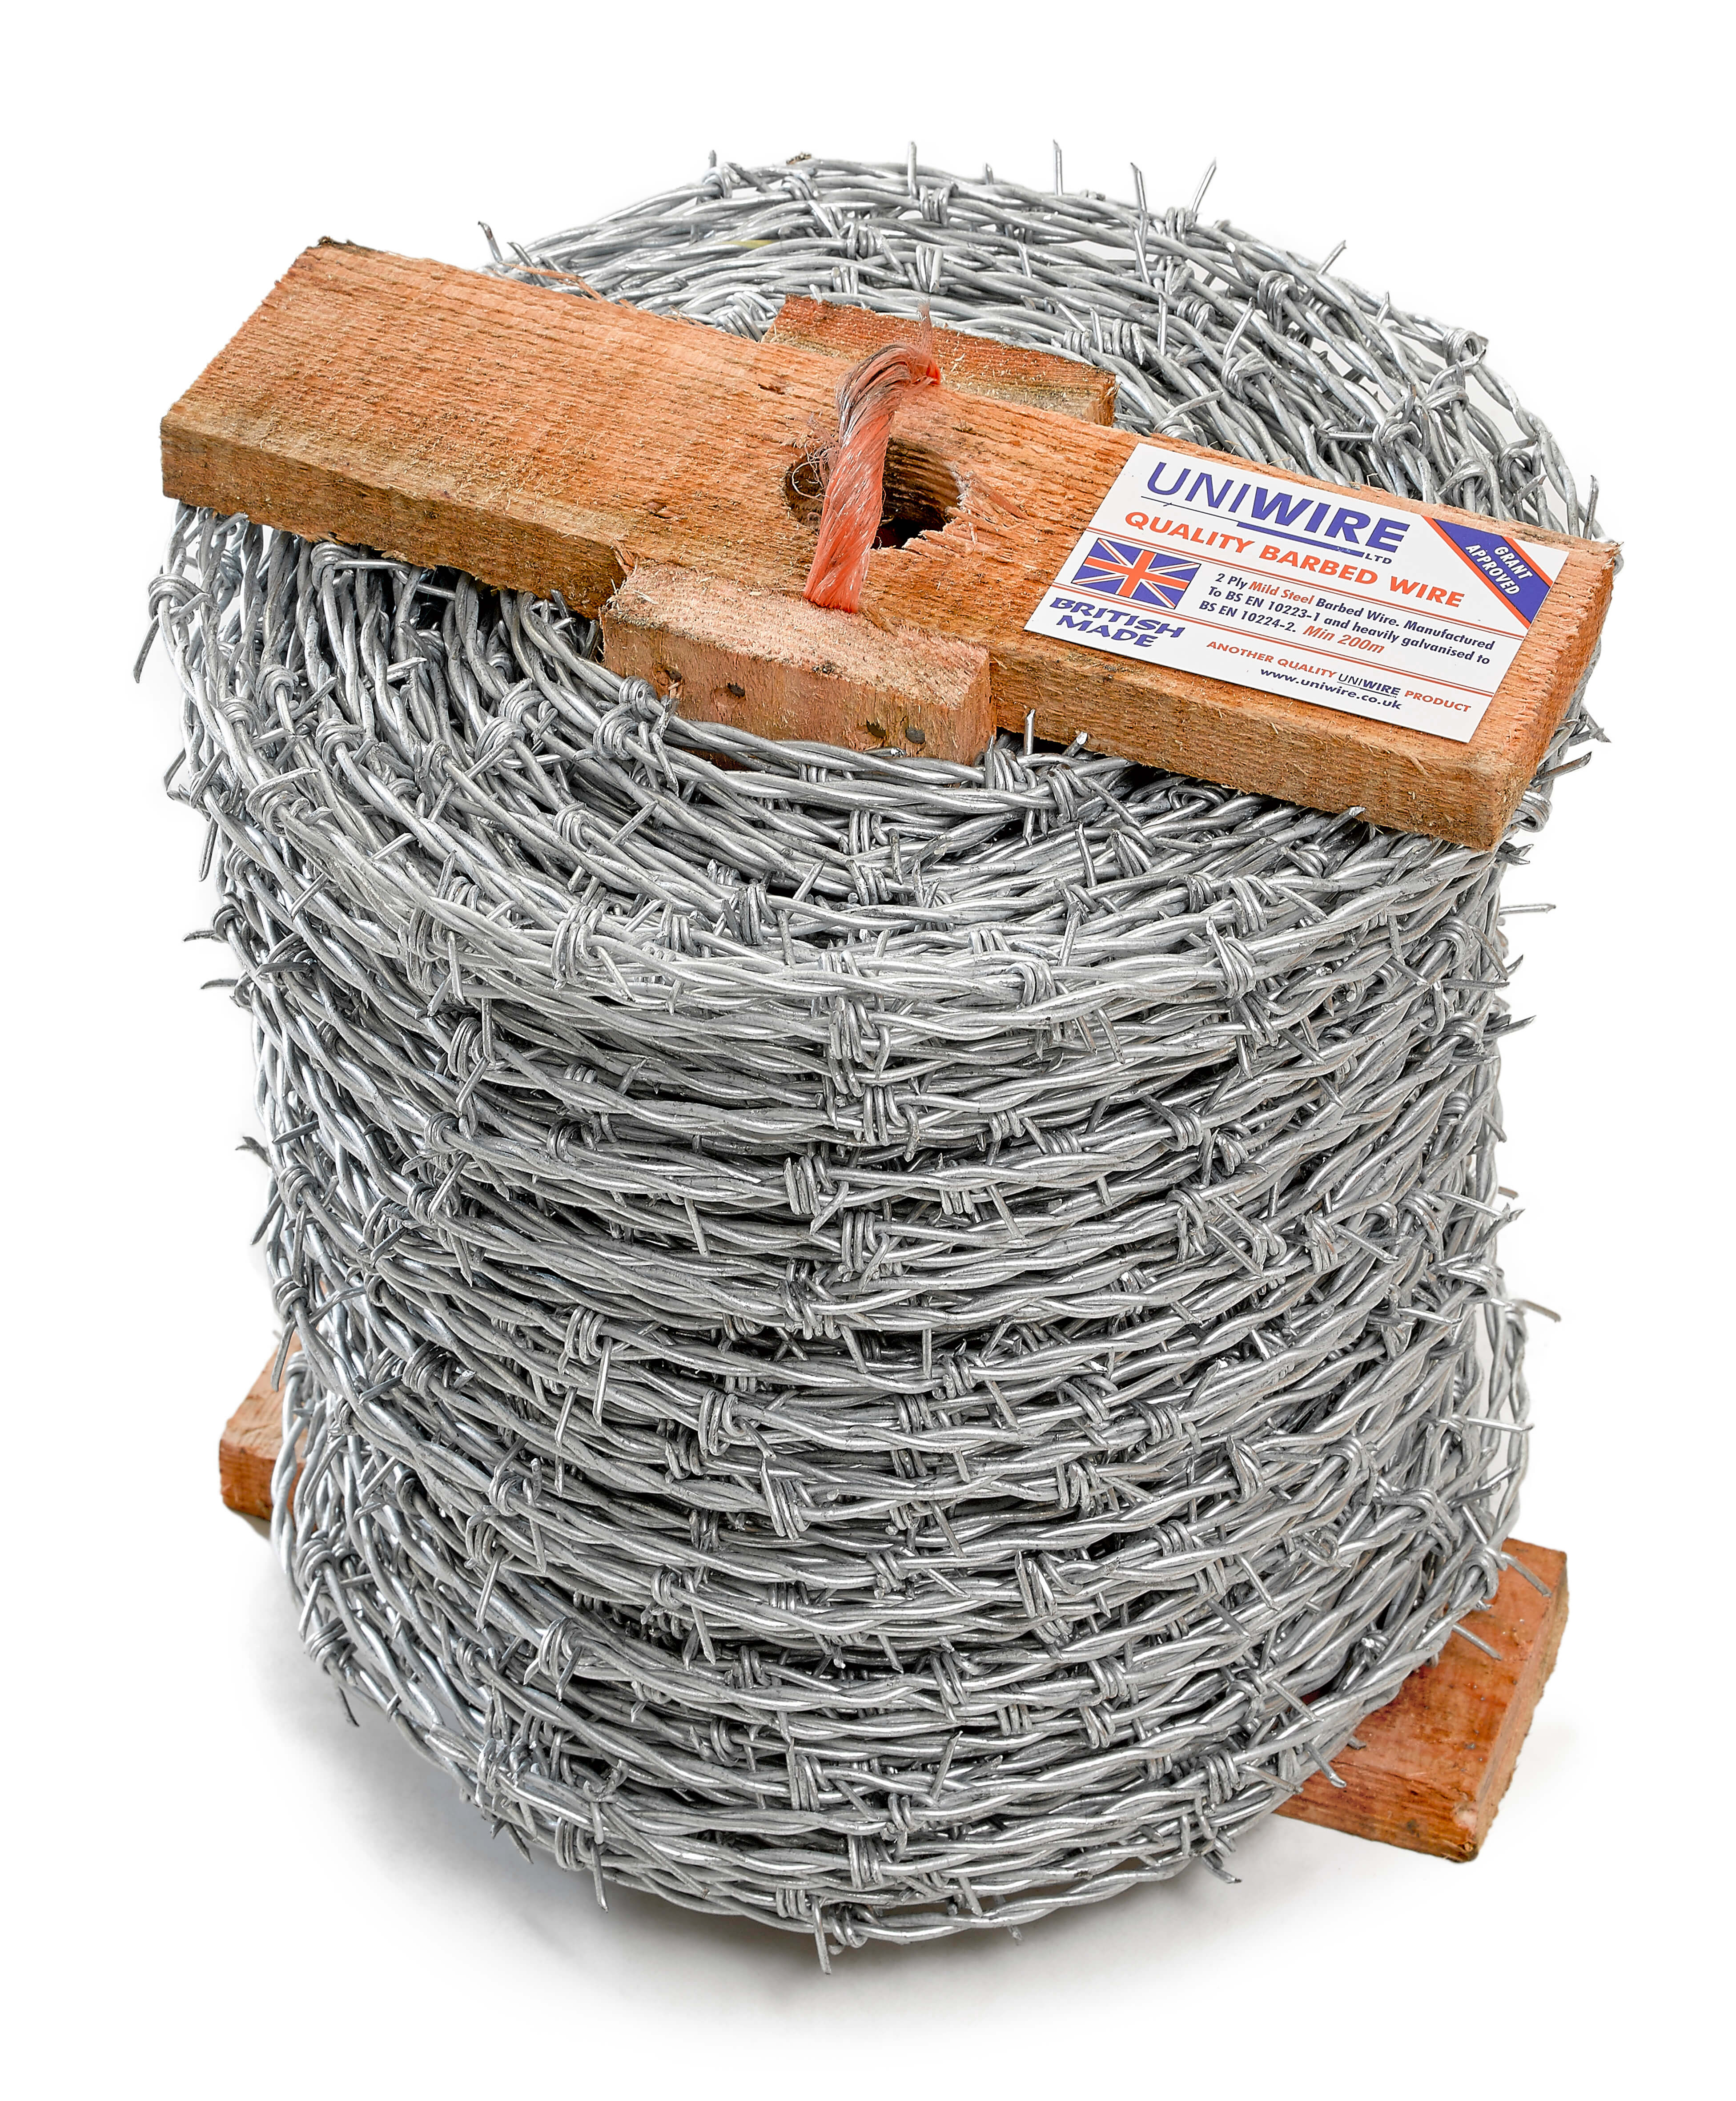 Quality British Fencing Products   Uniwire